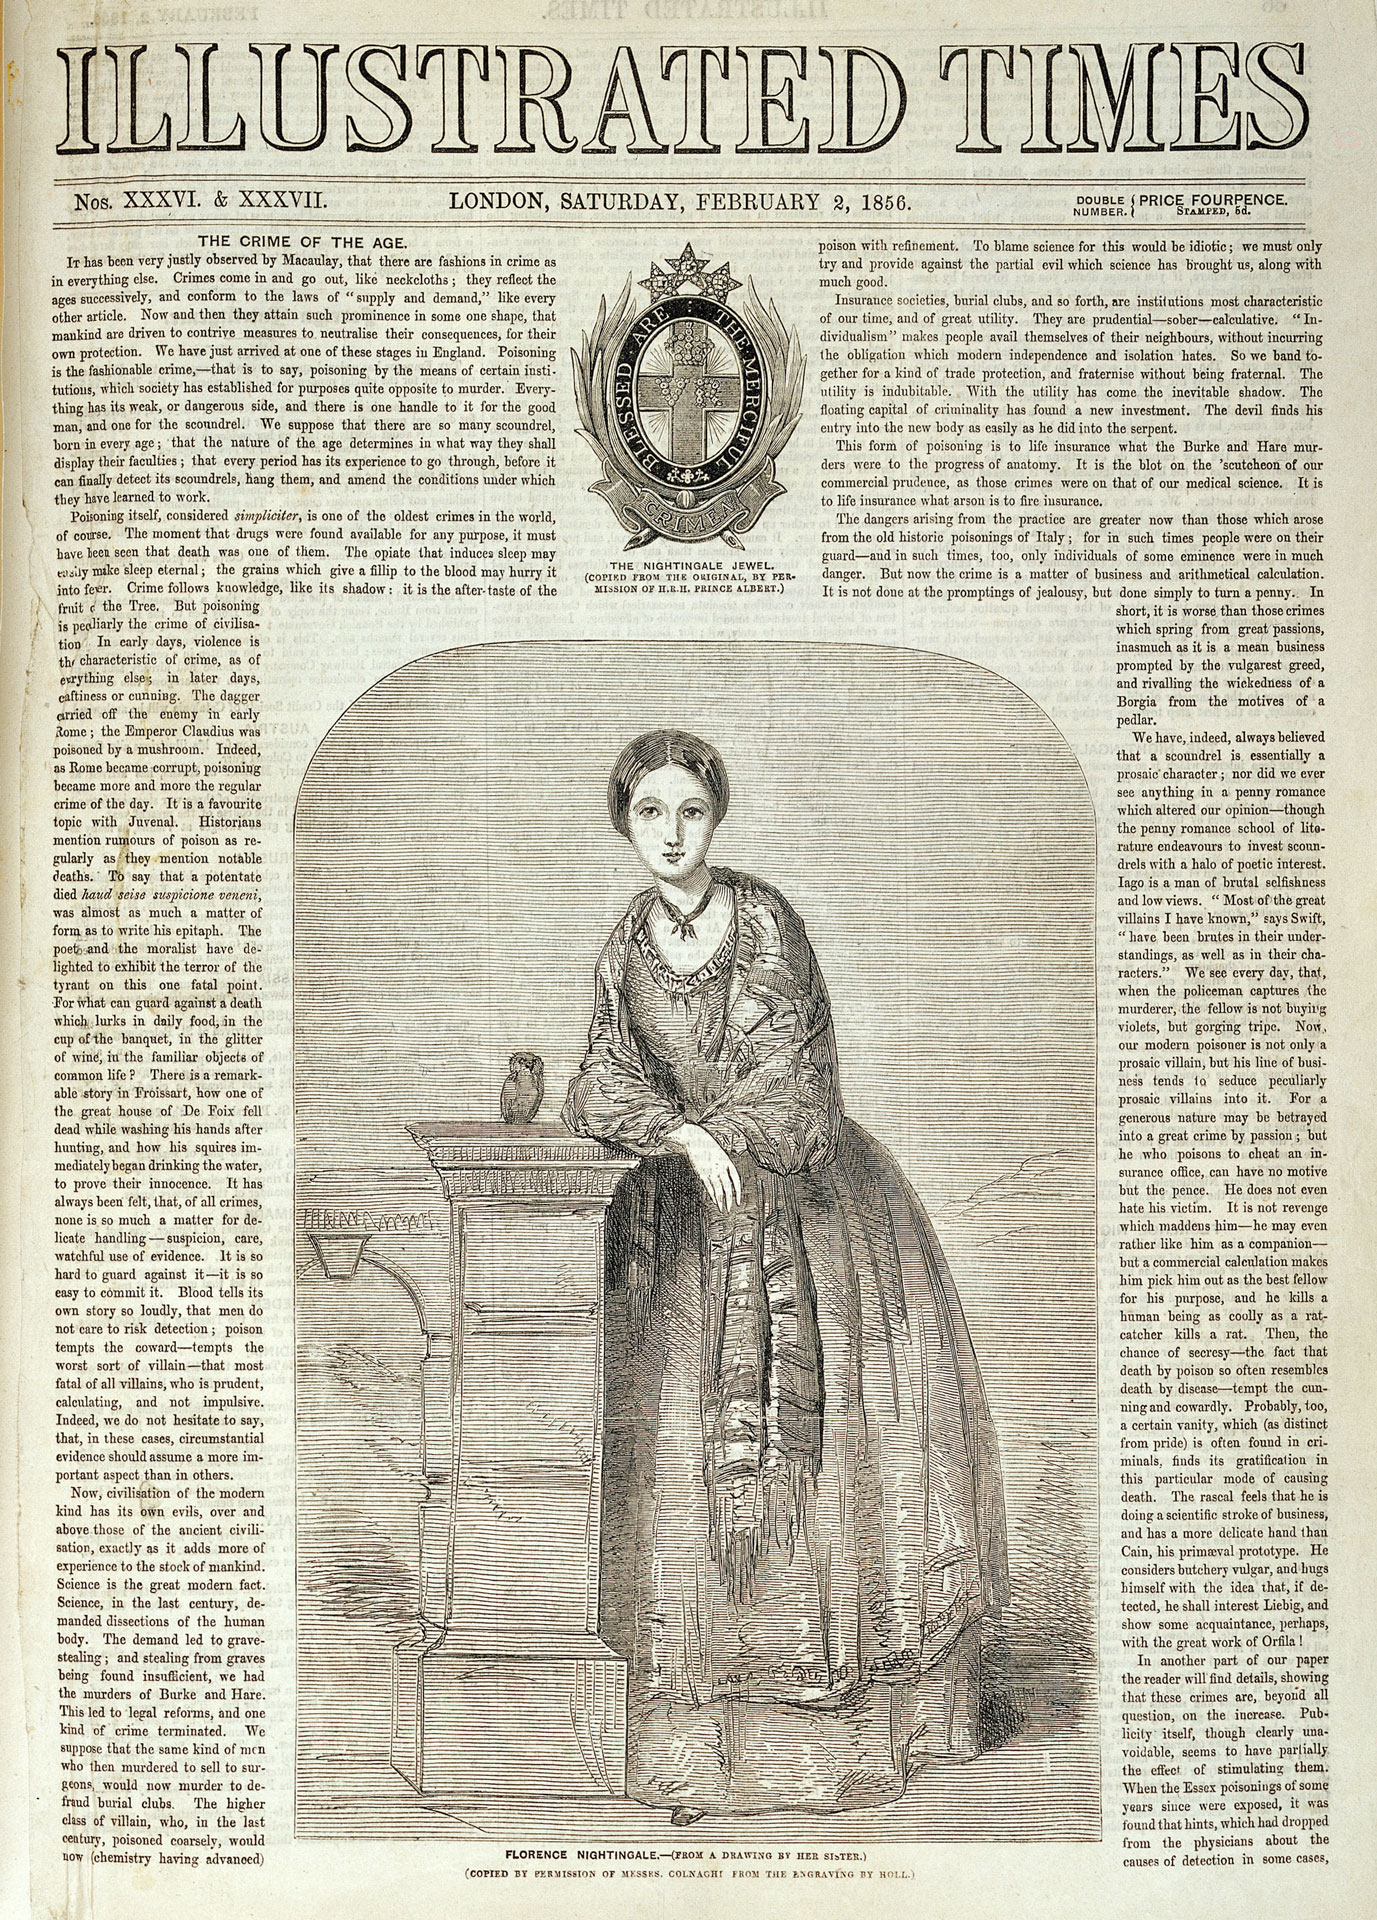 <strong>Figure 3.</strong> <i>Illustrated Times</i> news story featuring Florence Nightingale, Feb. 2, 1856.